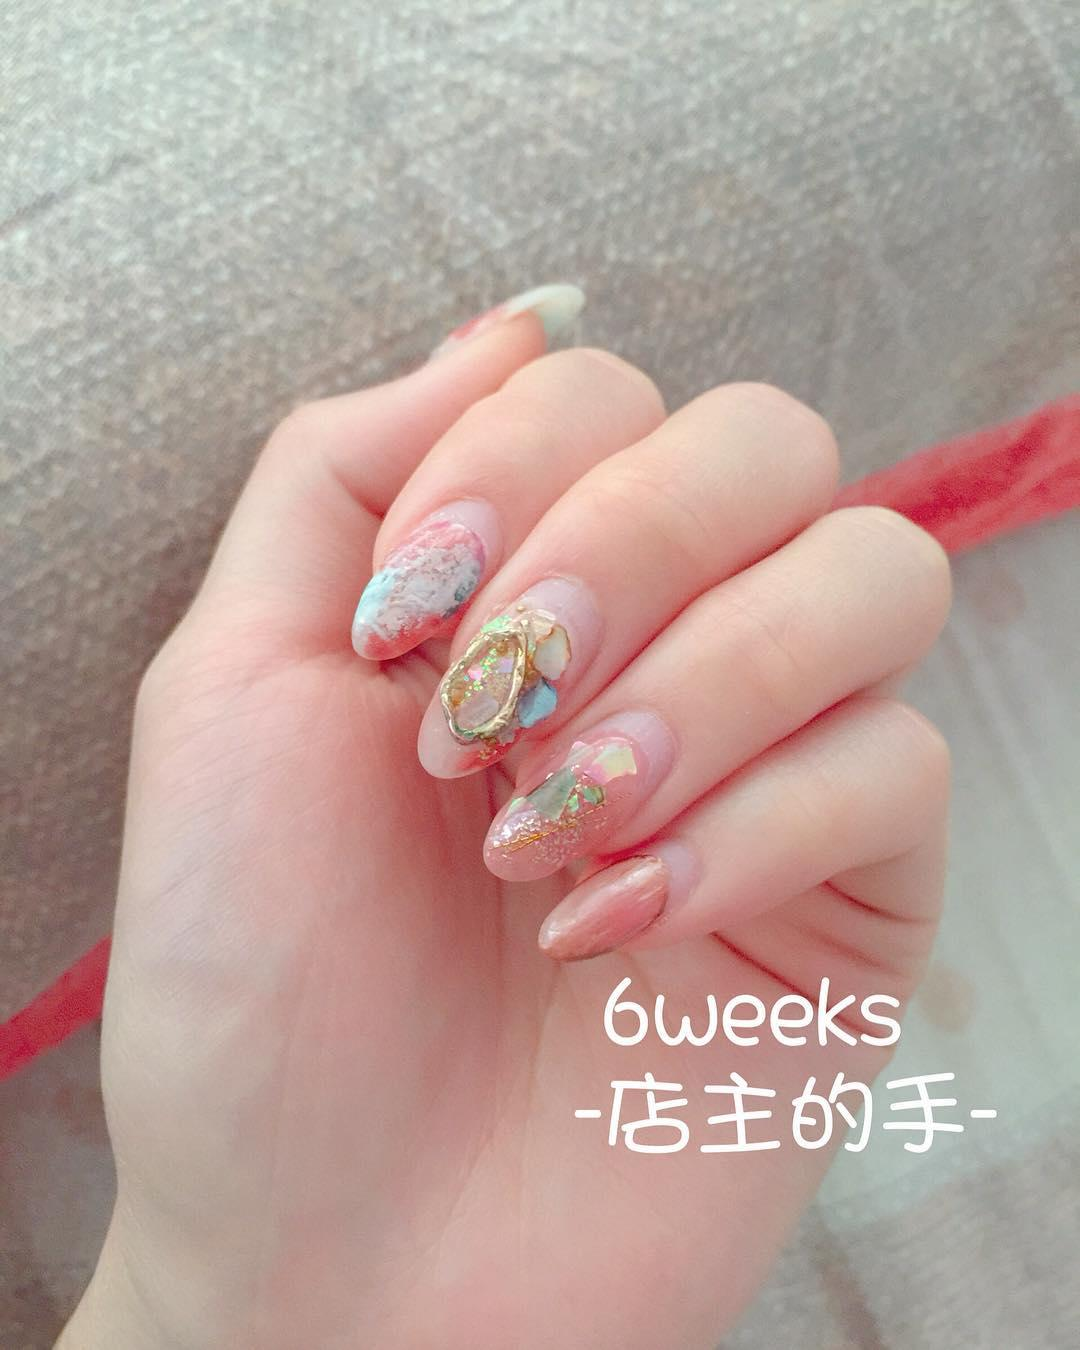 22 french manicure ideas and designs 2019 6 - 22 French Manicure Ideas and Designs 2019